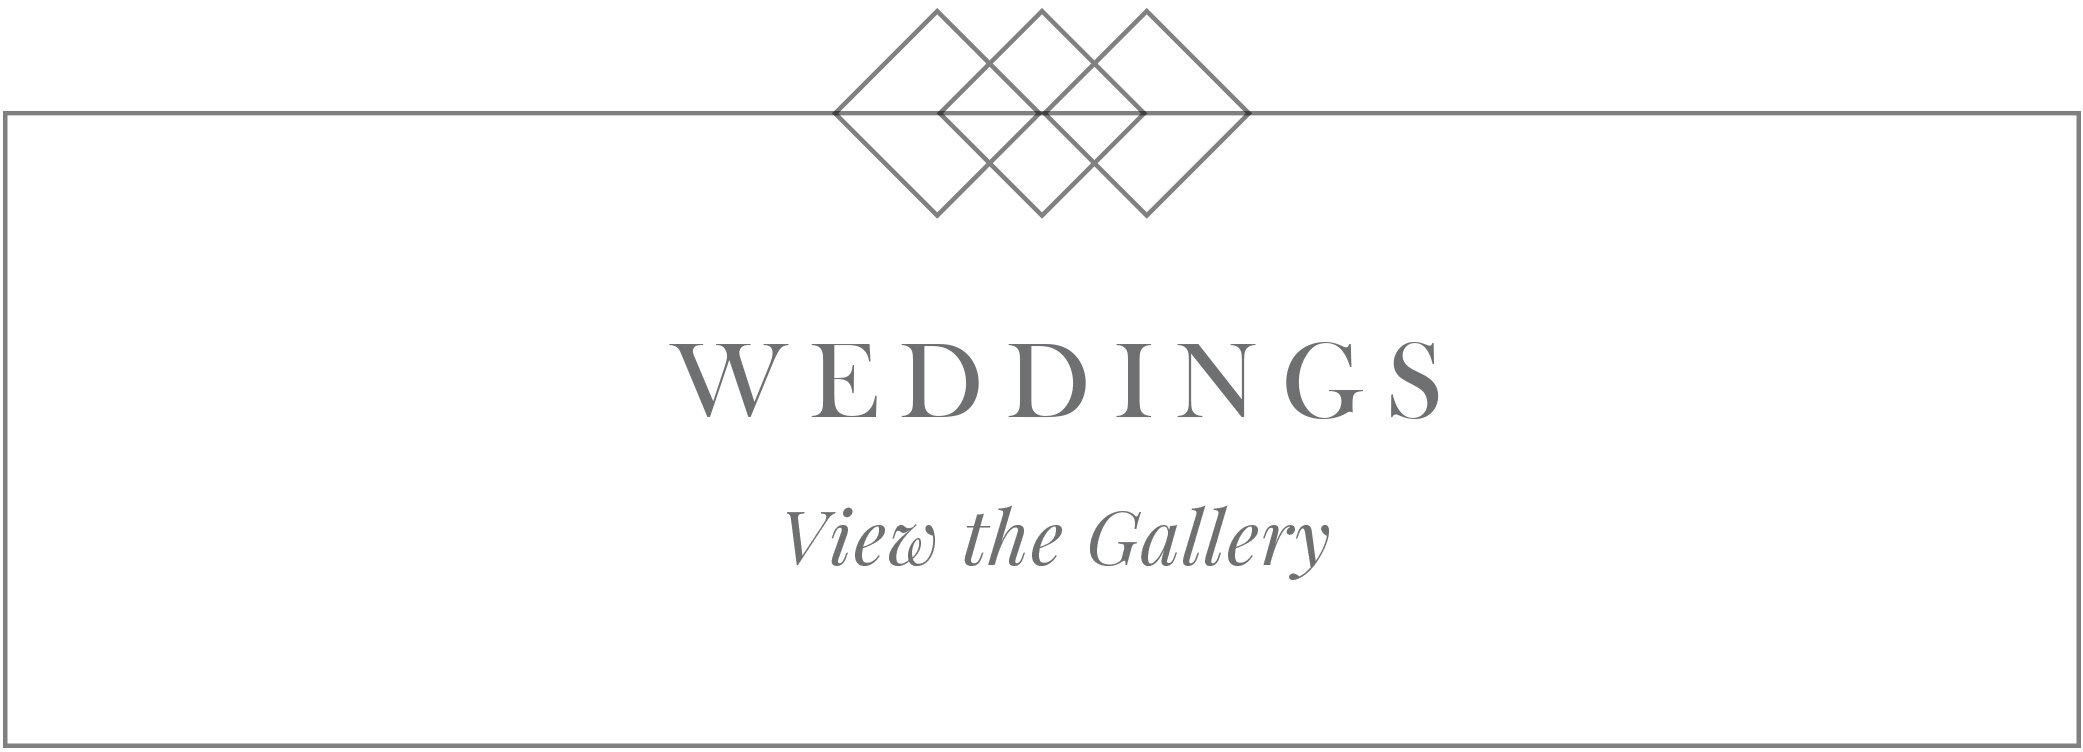 WEDDINGSgallerybutton.jpg